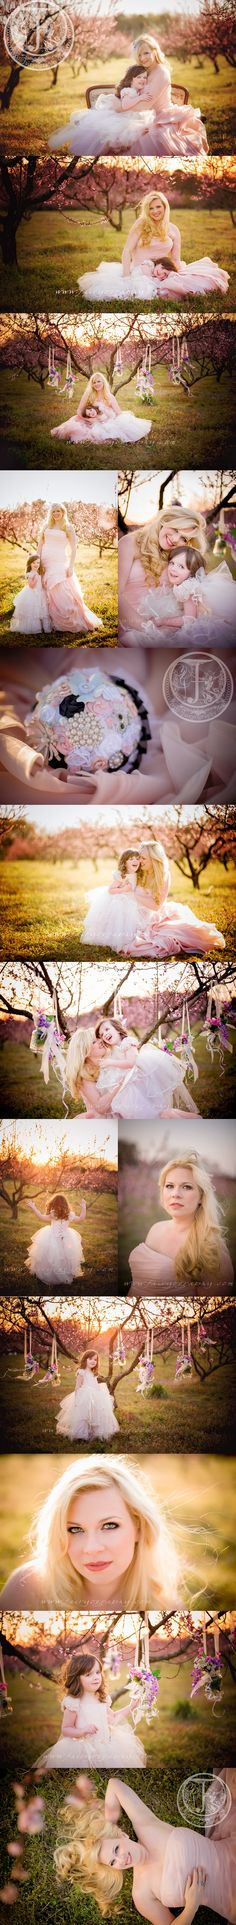 We would HAVE to do this!!!! What a fun sweet session idea for mama & little girl! Fairyography » Dream a Little Dream - Fairytale Photography